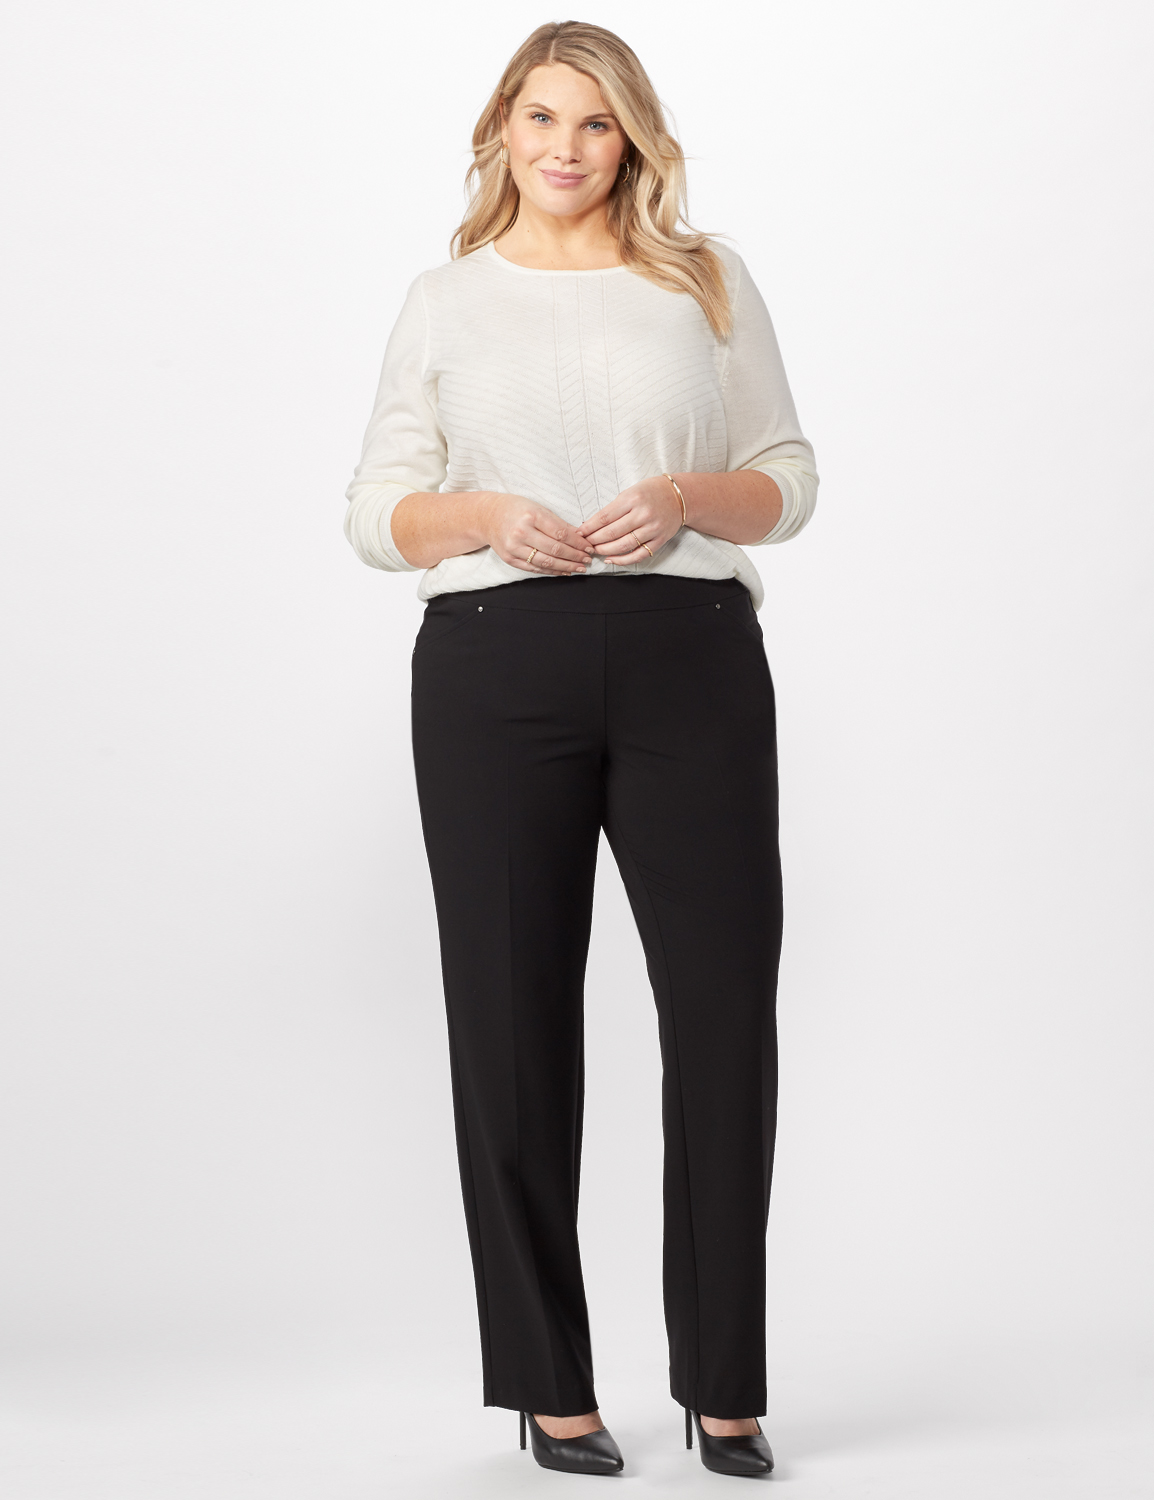 Secret Agent Tummy Control Pants Cateye Rivet - Tall Length -Black - Front